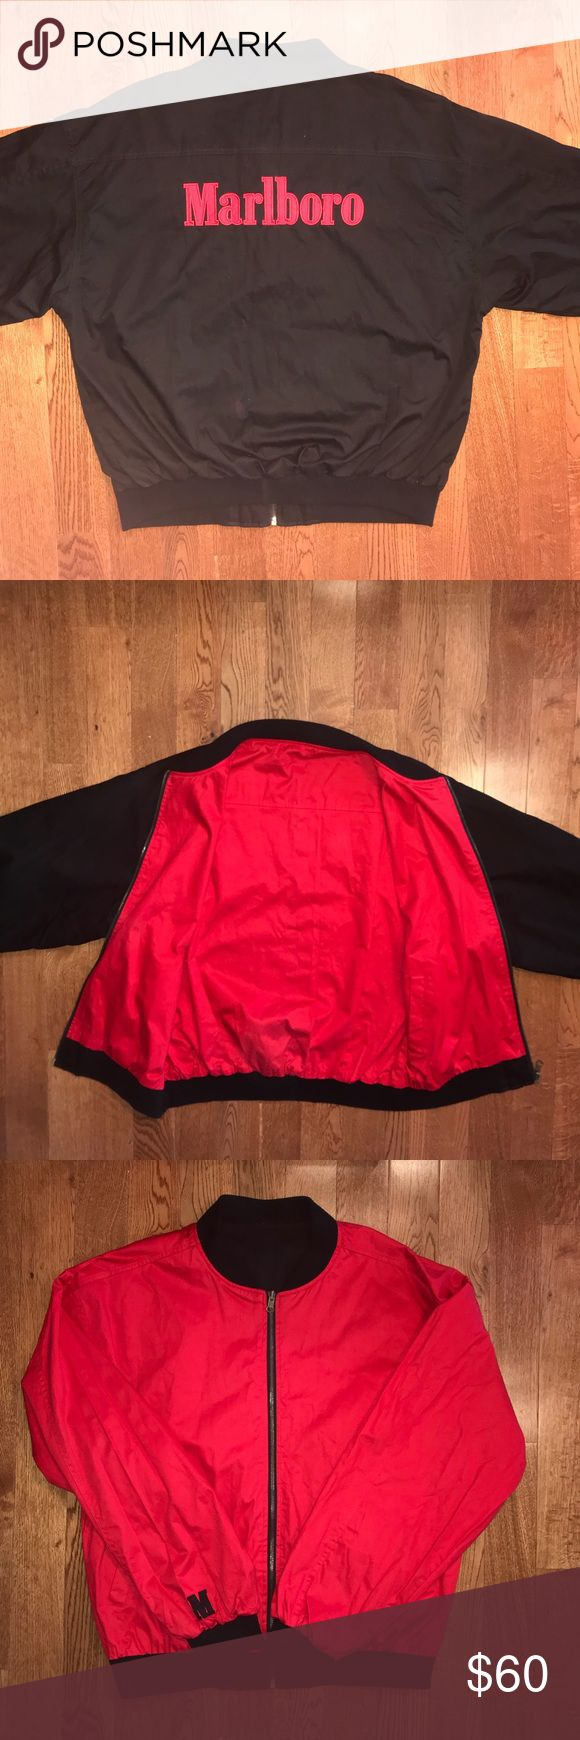 Rare vintage reversible Marlboro jacket Super dope rare vintage reversible Marlboro jacket with beautiful big logo embroidered  Tagged xxl, fits closer to a men's large / xl Excellent condition no stains or flaws marlboro Jackets & Coats